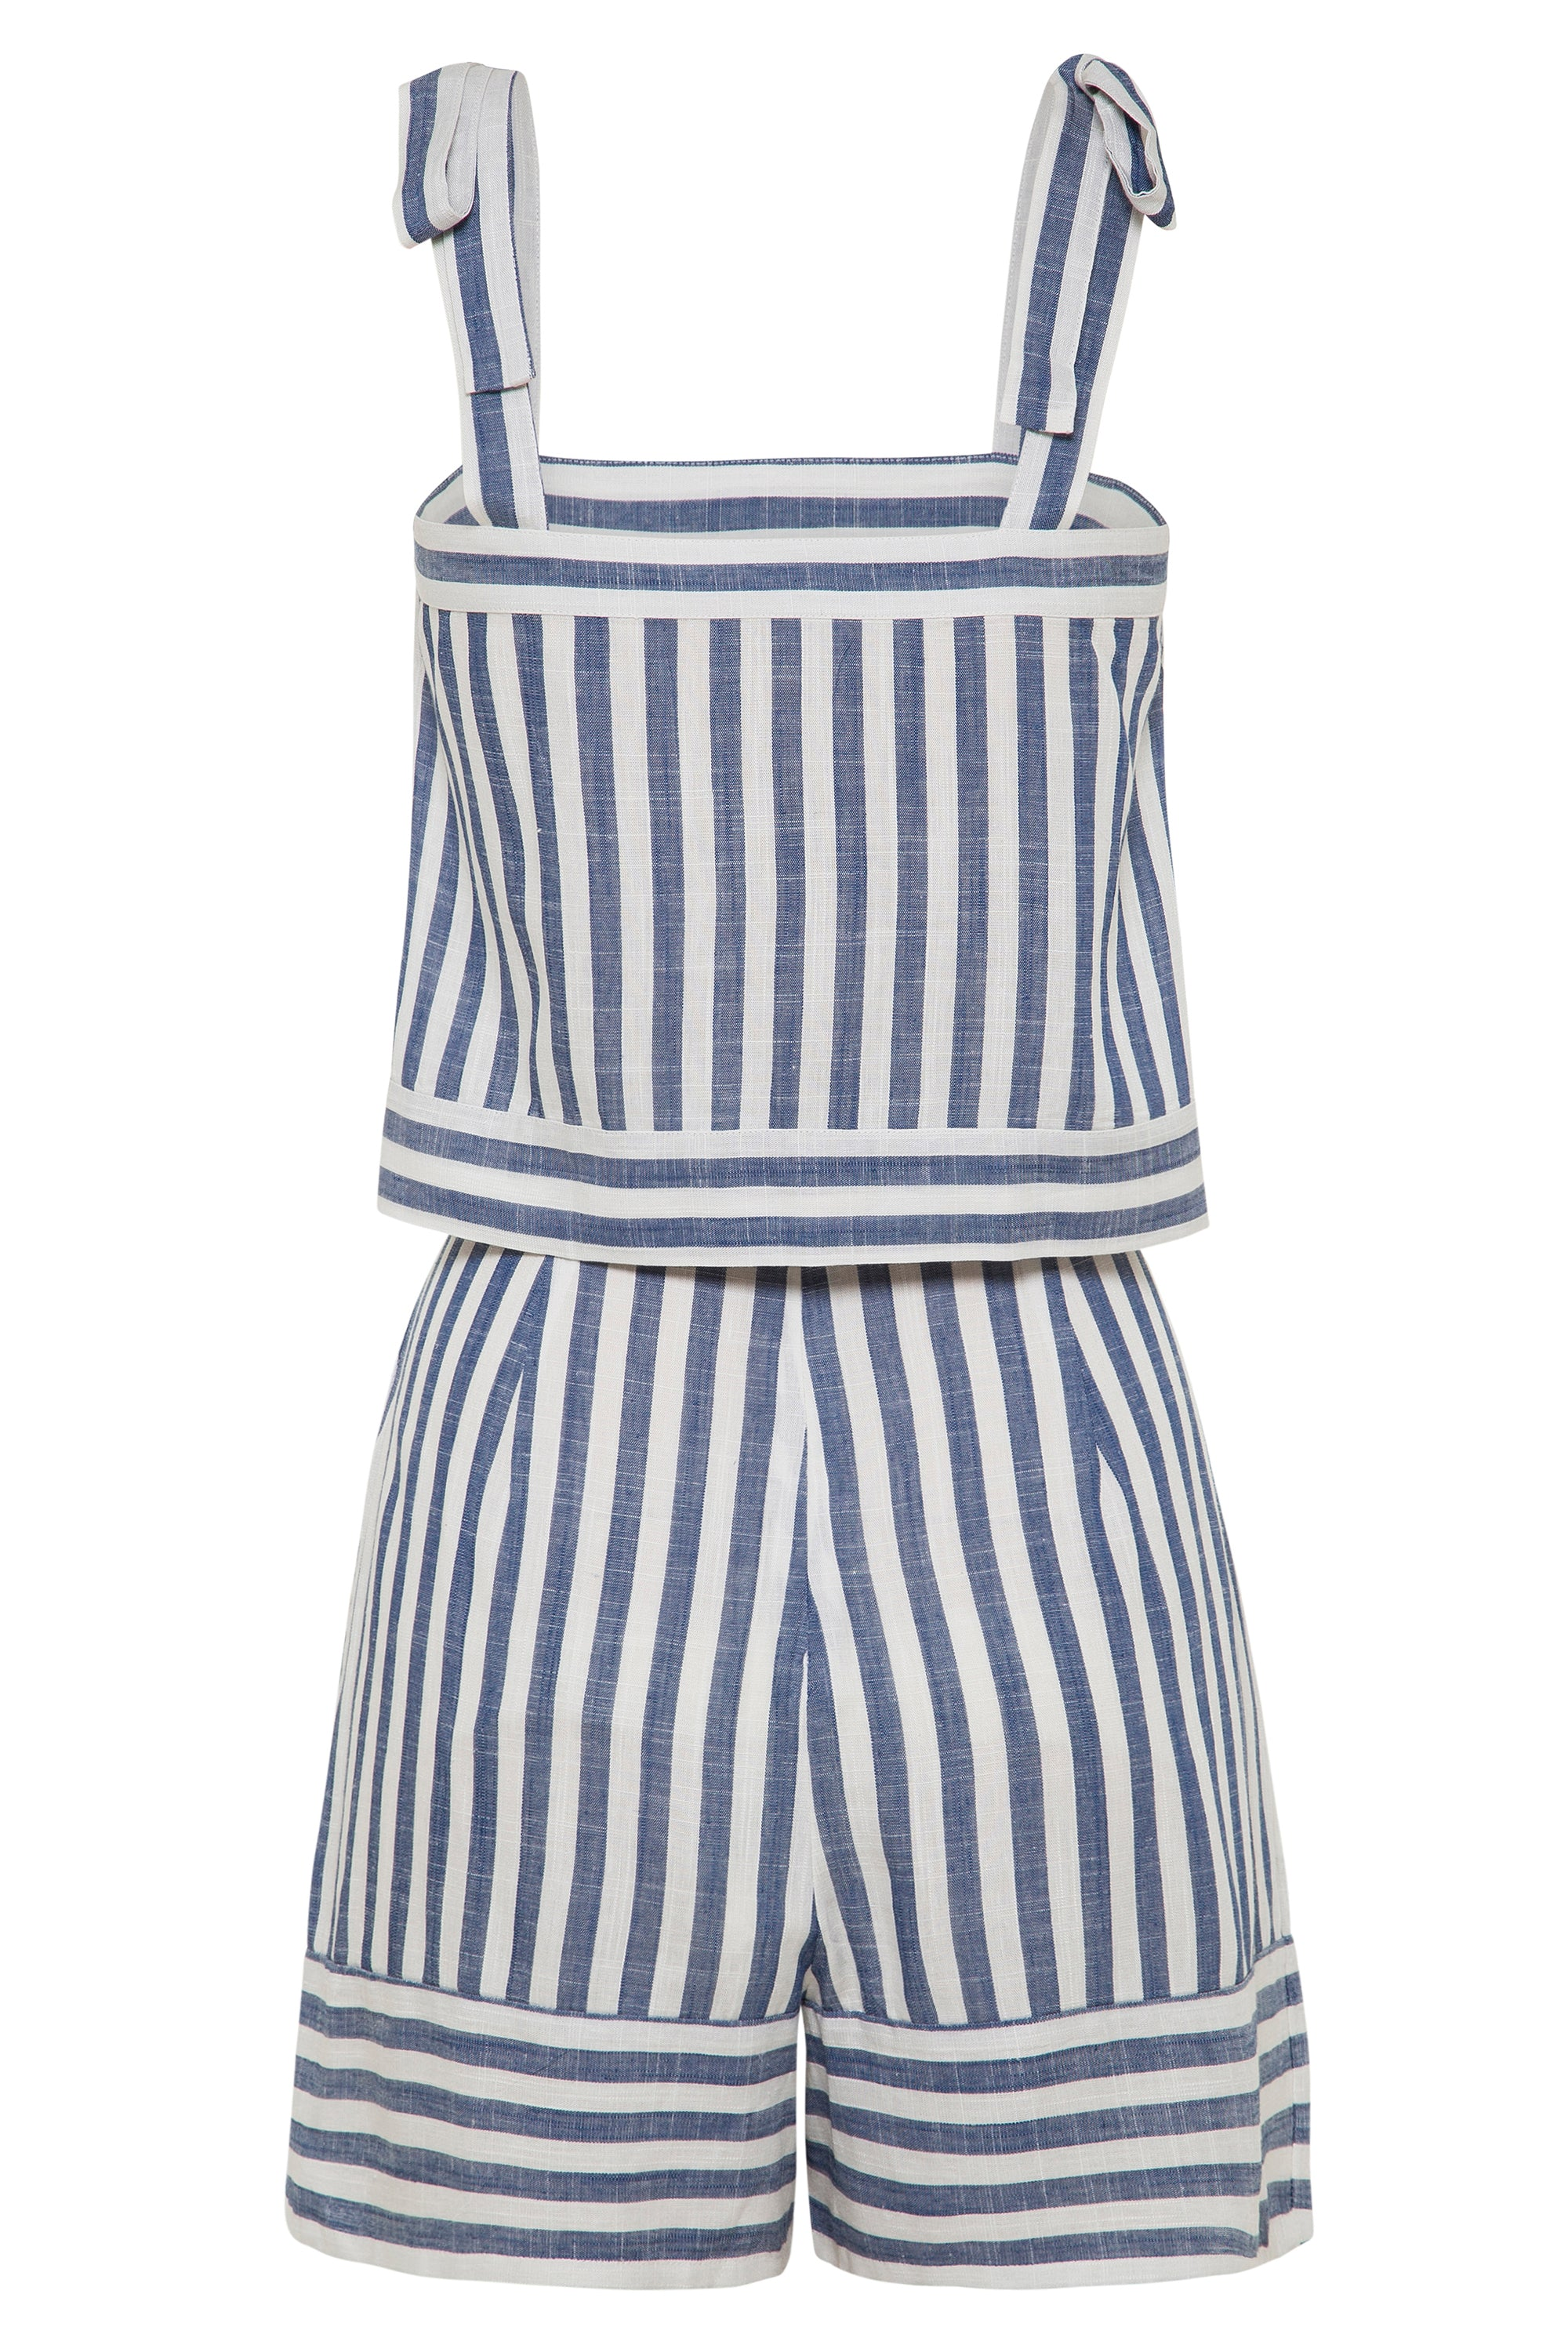 Dixie Playsuit In Blue Stripe